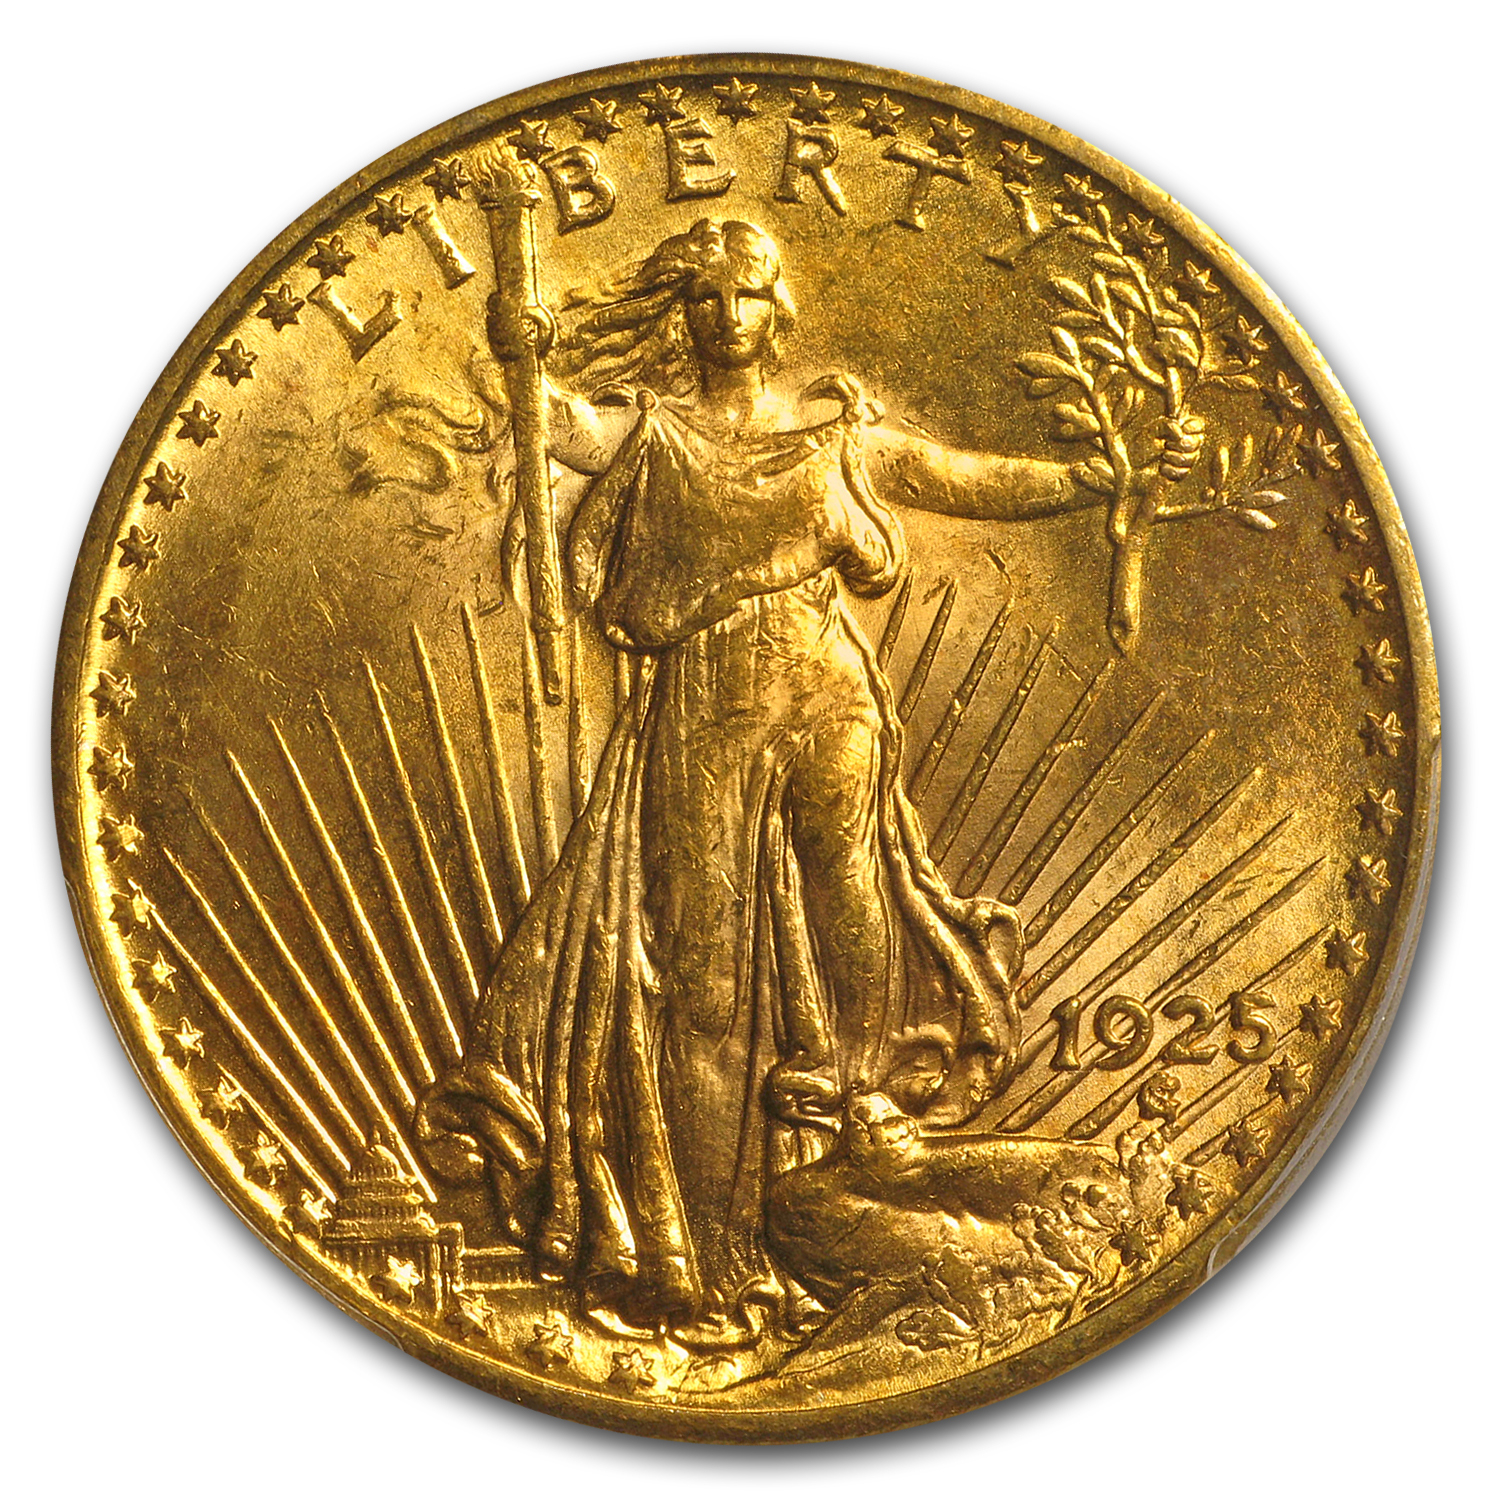 1925 $20 Saint-Gaudens Gold Double Eagle MS-63 PCGS